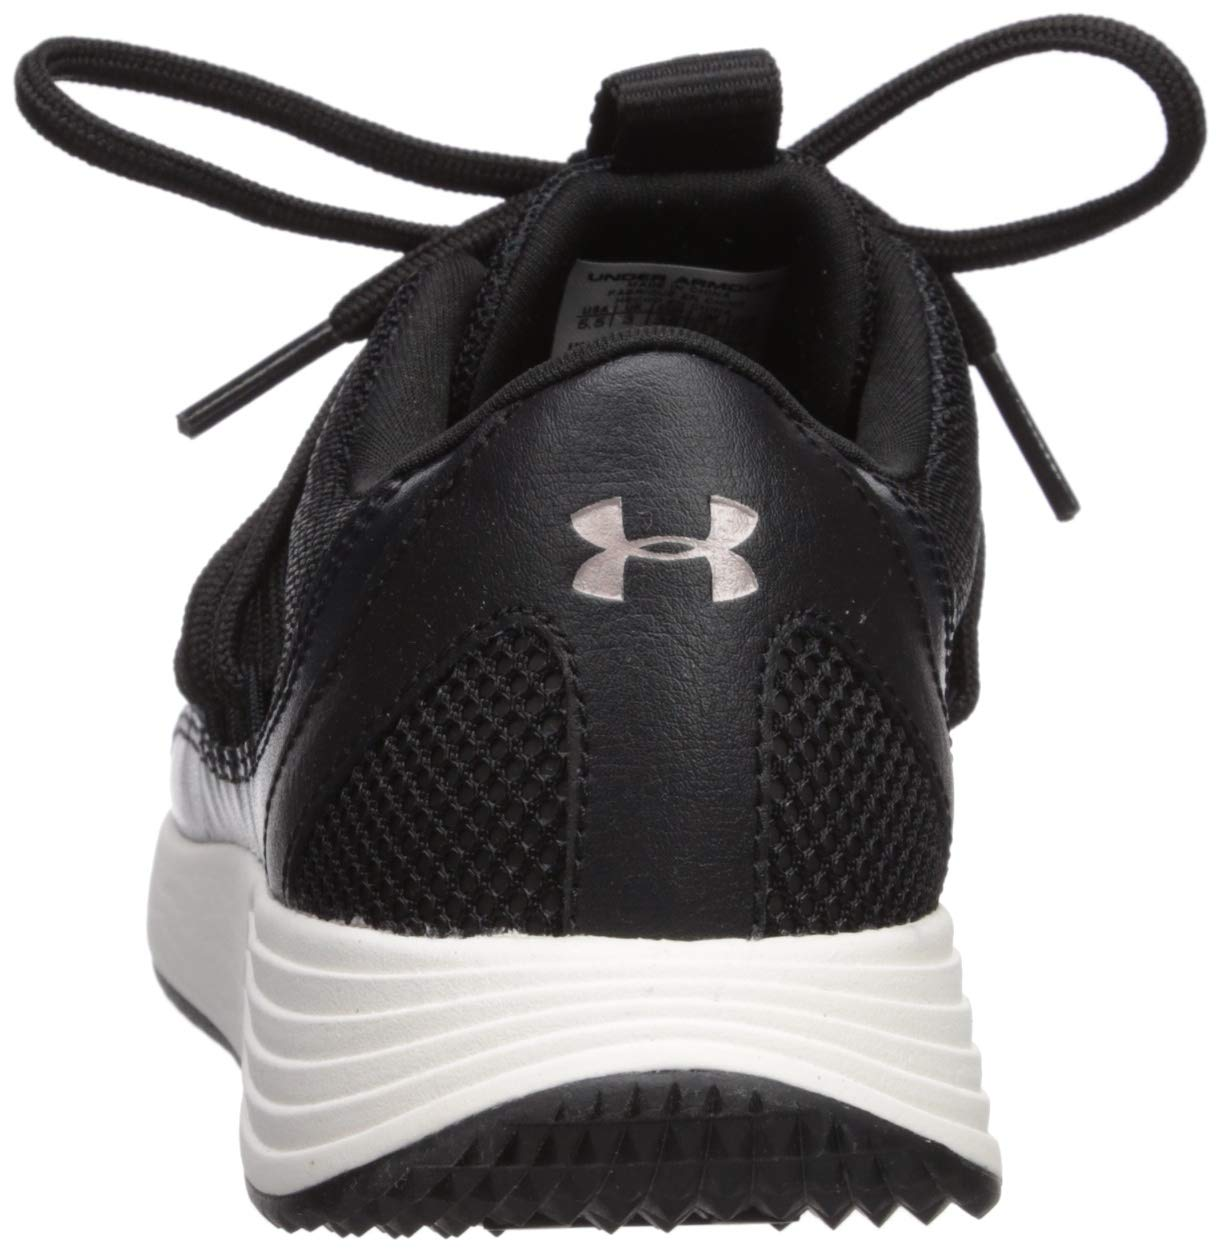 61xV n271WL - Under Armour Women's Ua W Breathe Lace X Nm Running Shoes